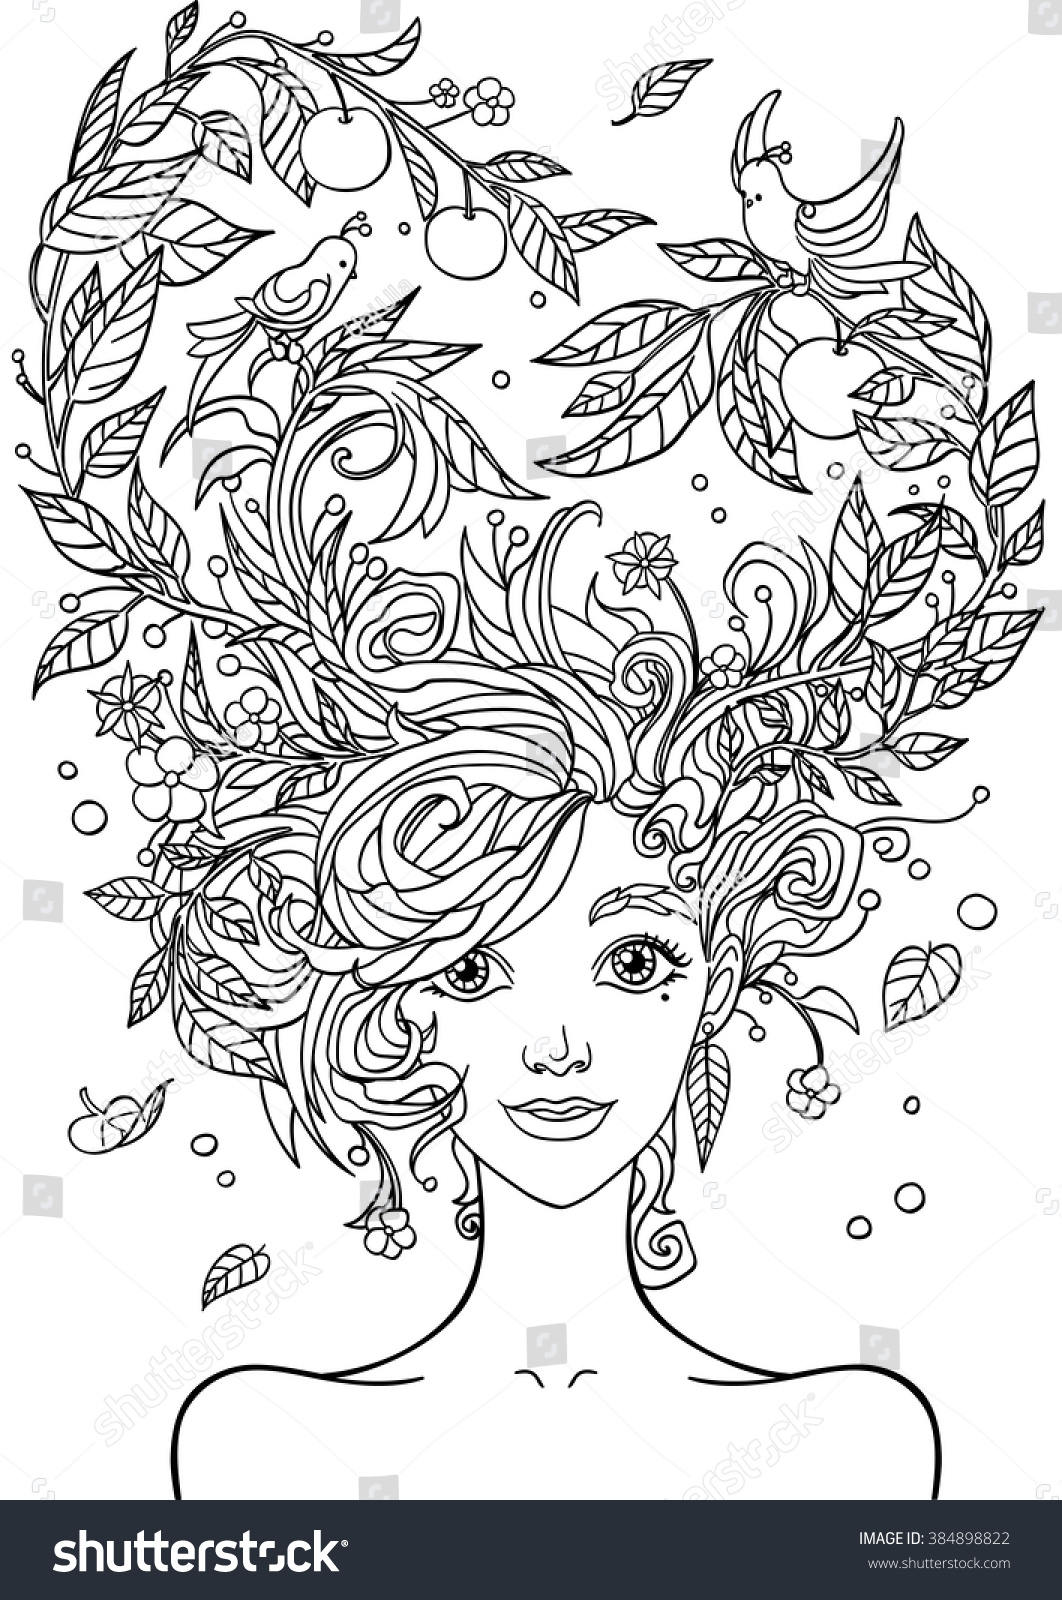 Pretty girl coloring pages - Print For The Adult Coloring Book Portrait Of A Beautiful Girl In Zentangle Style